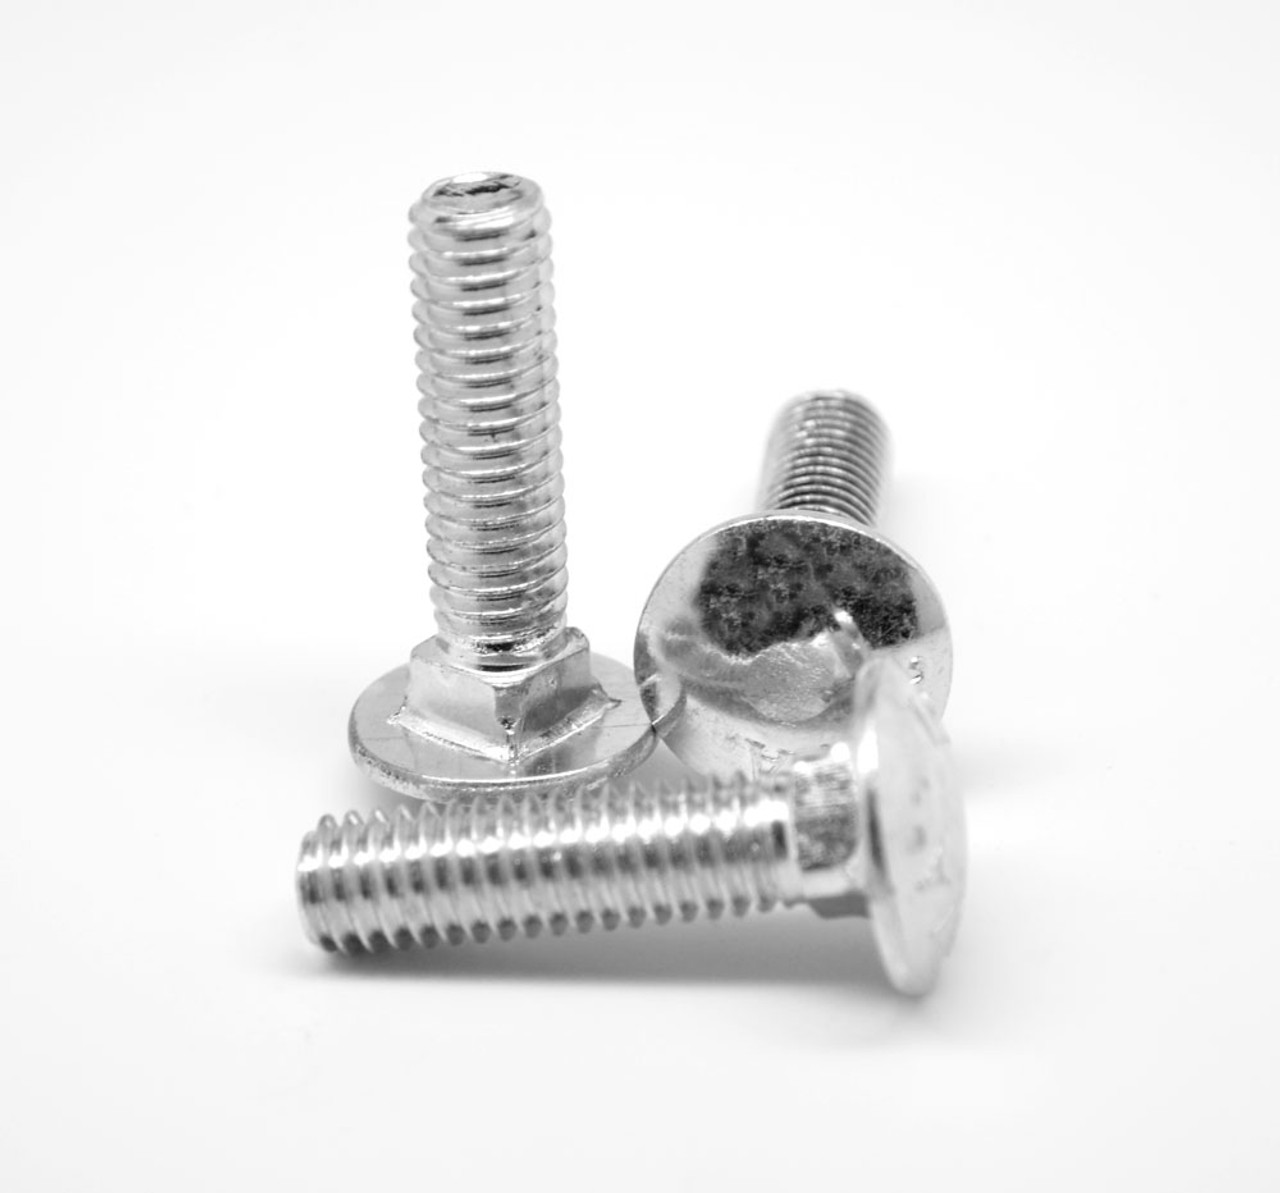 """#10-24 x 1 1/4"""" (FT) Coarse Thread A307 Grade A Carriage Bolt Low Carbon Steel Zinc Plated"""